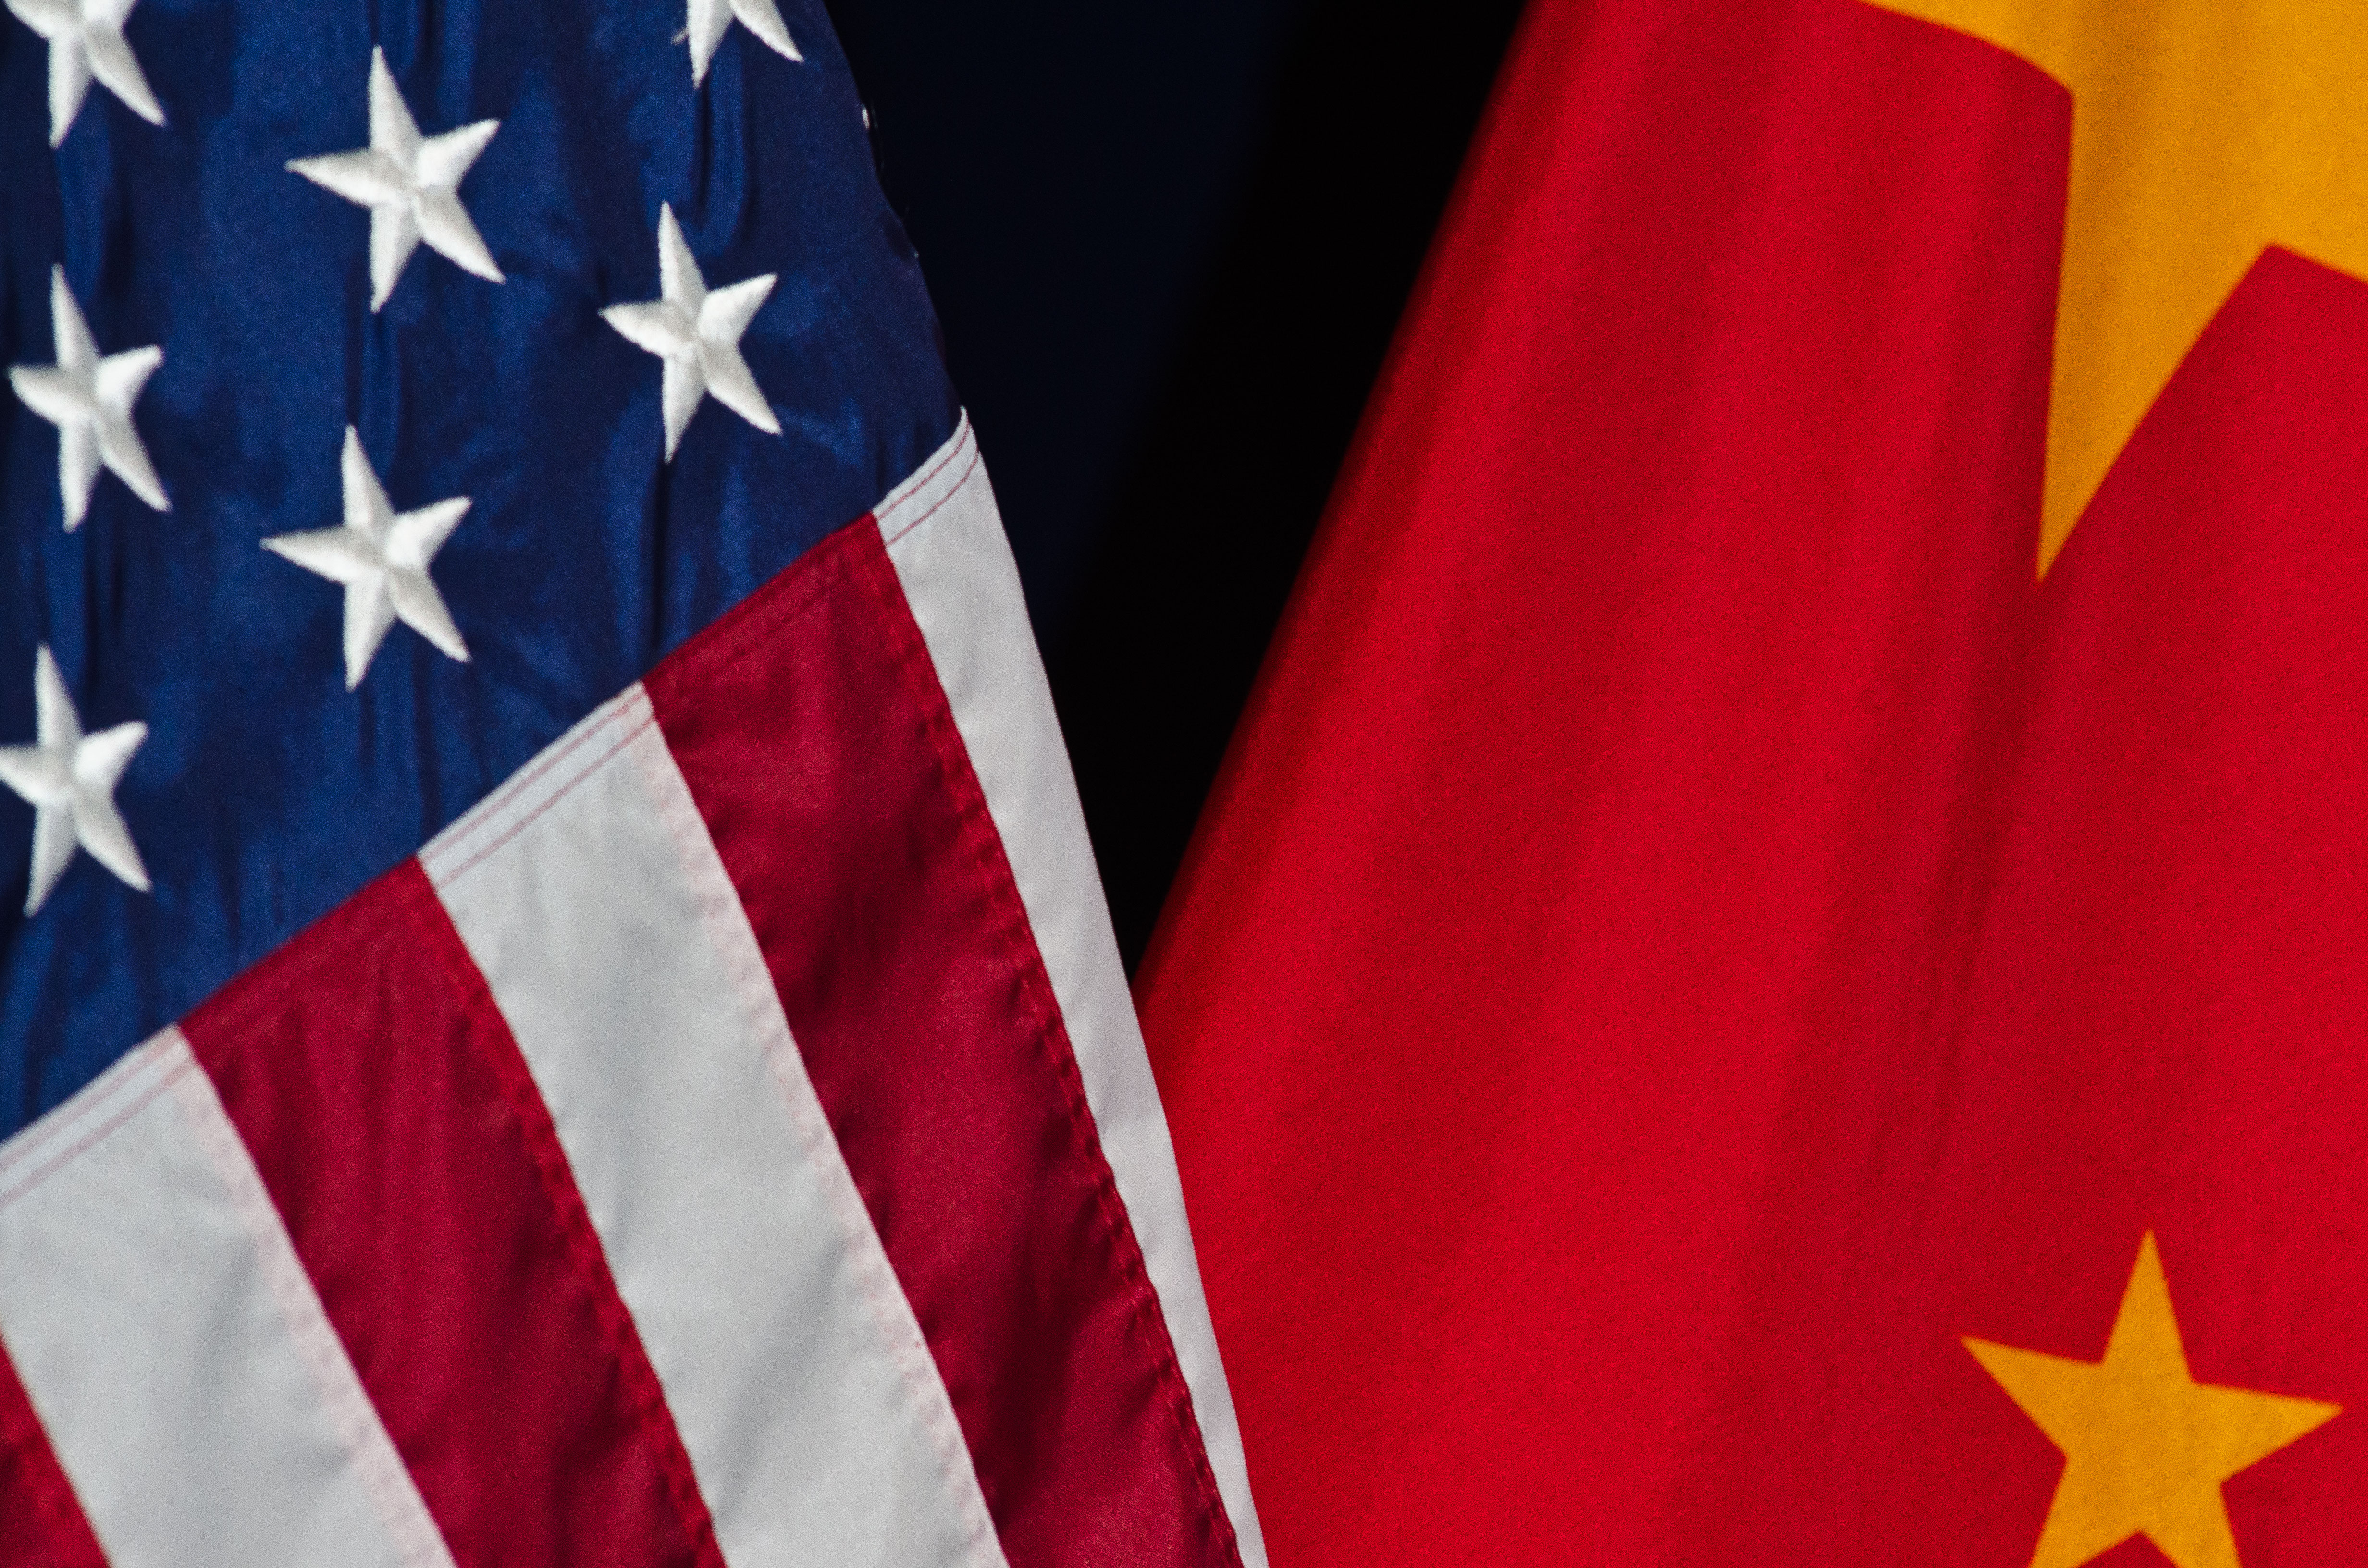 U.S. and China flags hanging side-by-side